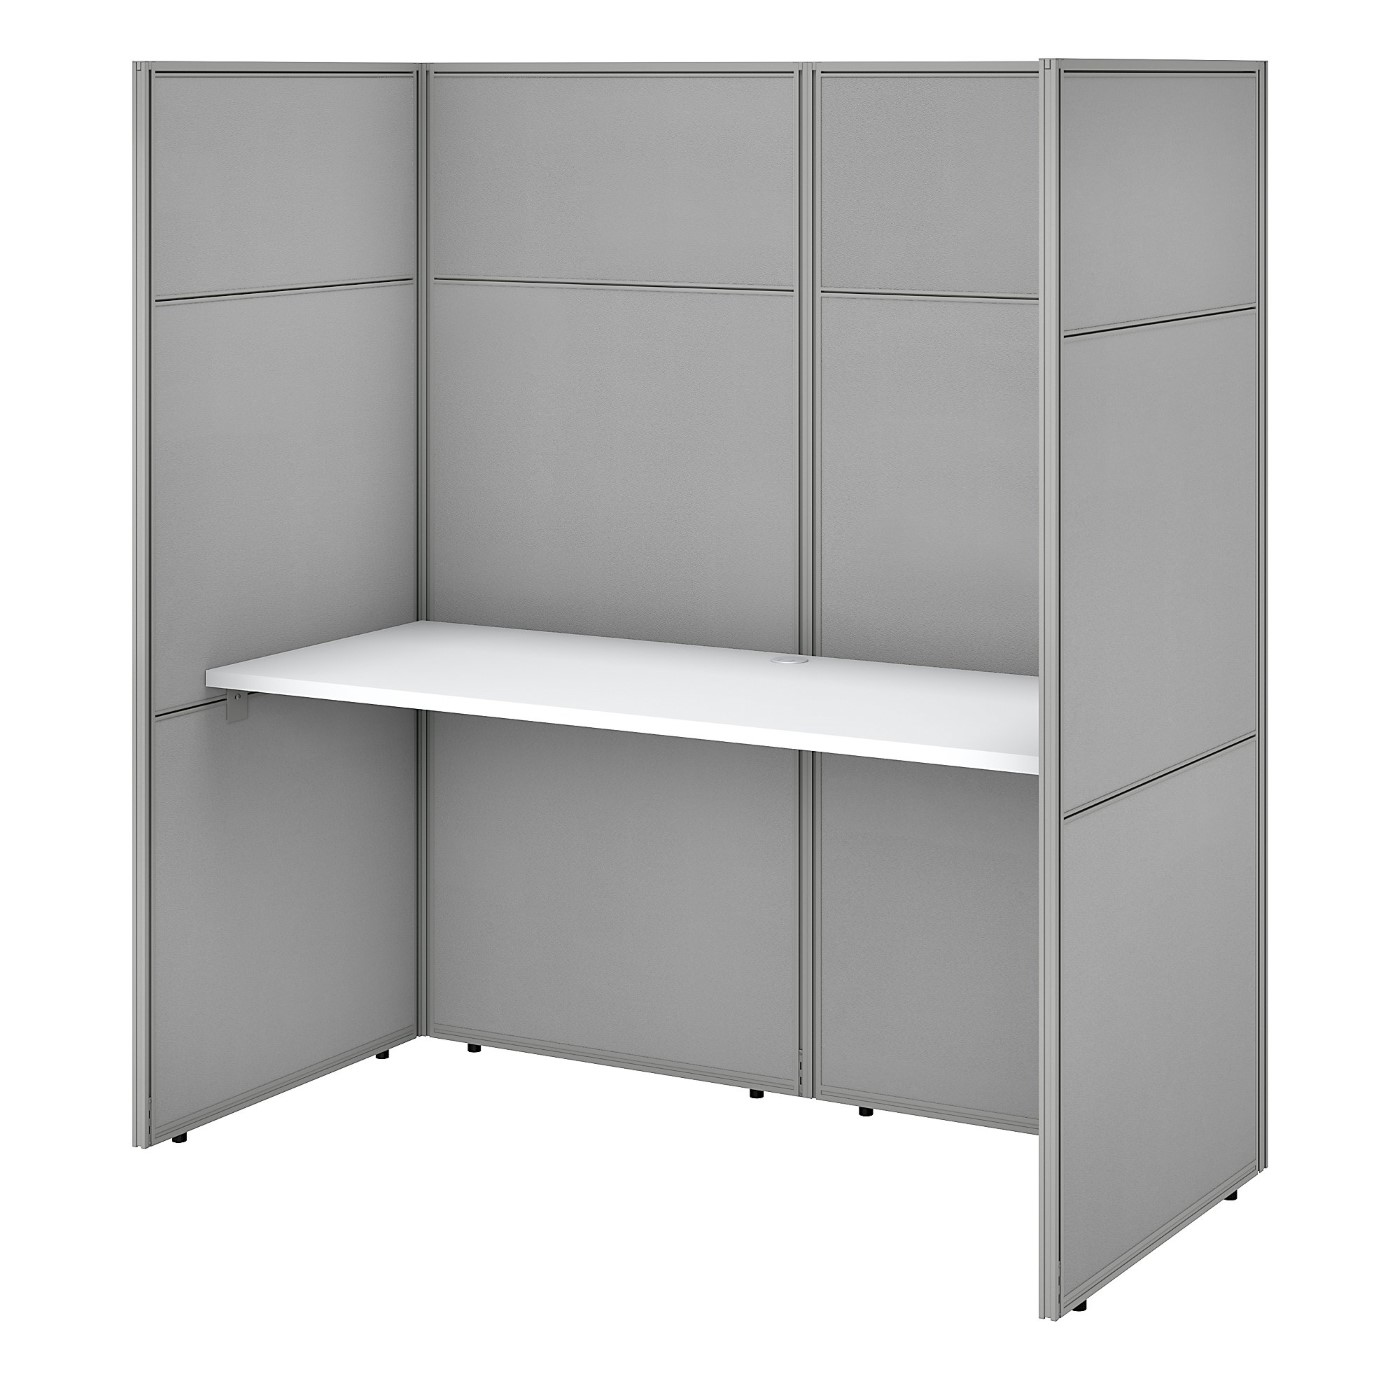 BUSH BUSINESS FURNITURE EASY OFFICE 60W CUBICLE DESK WORKSTATION WITH 66H CLOSED PANELS. FREE SHIPPING